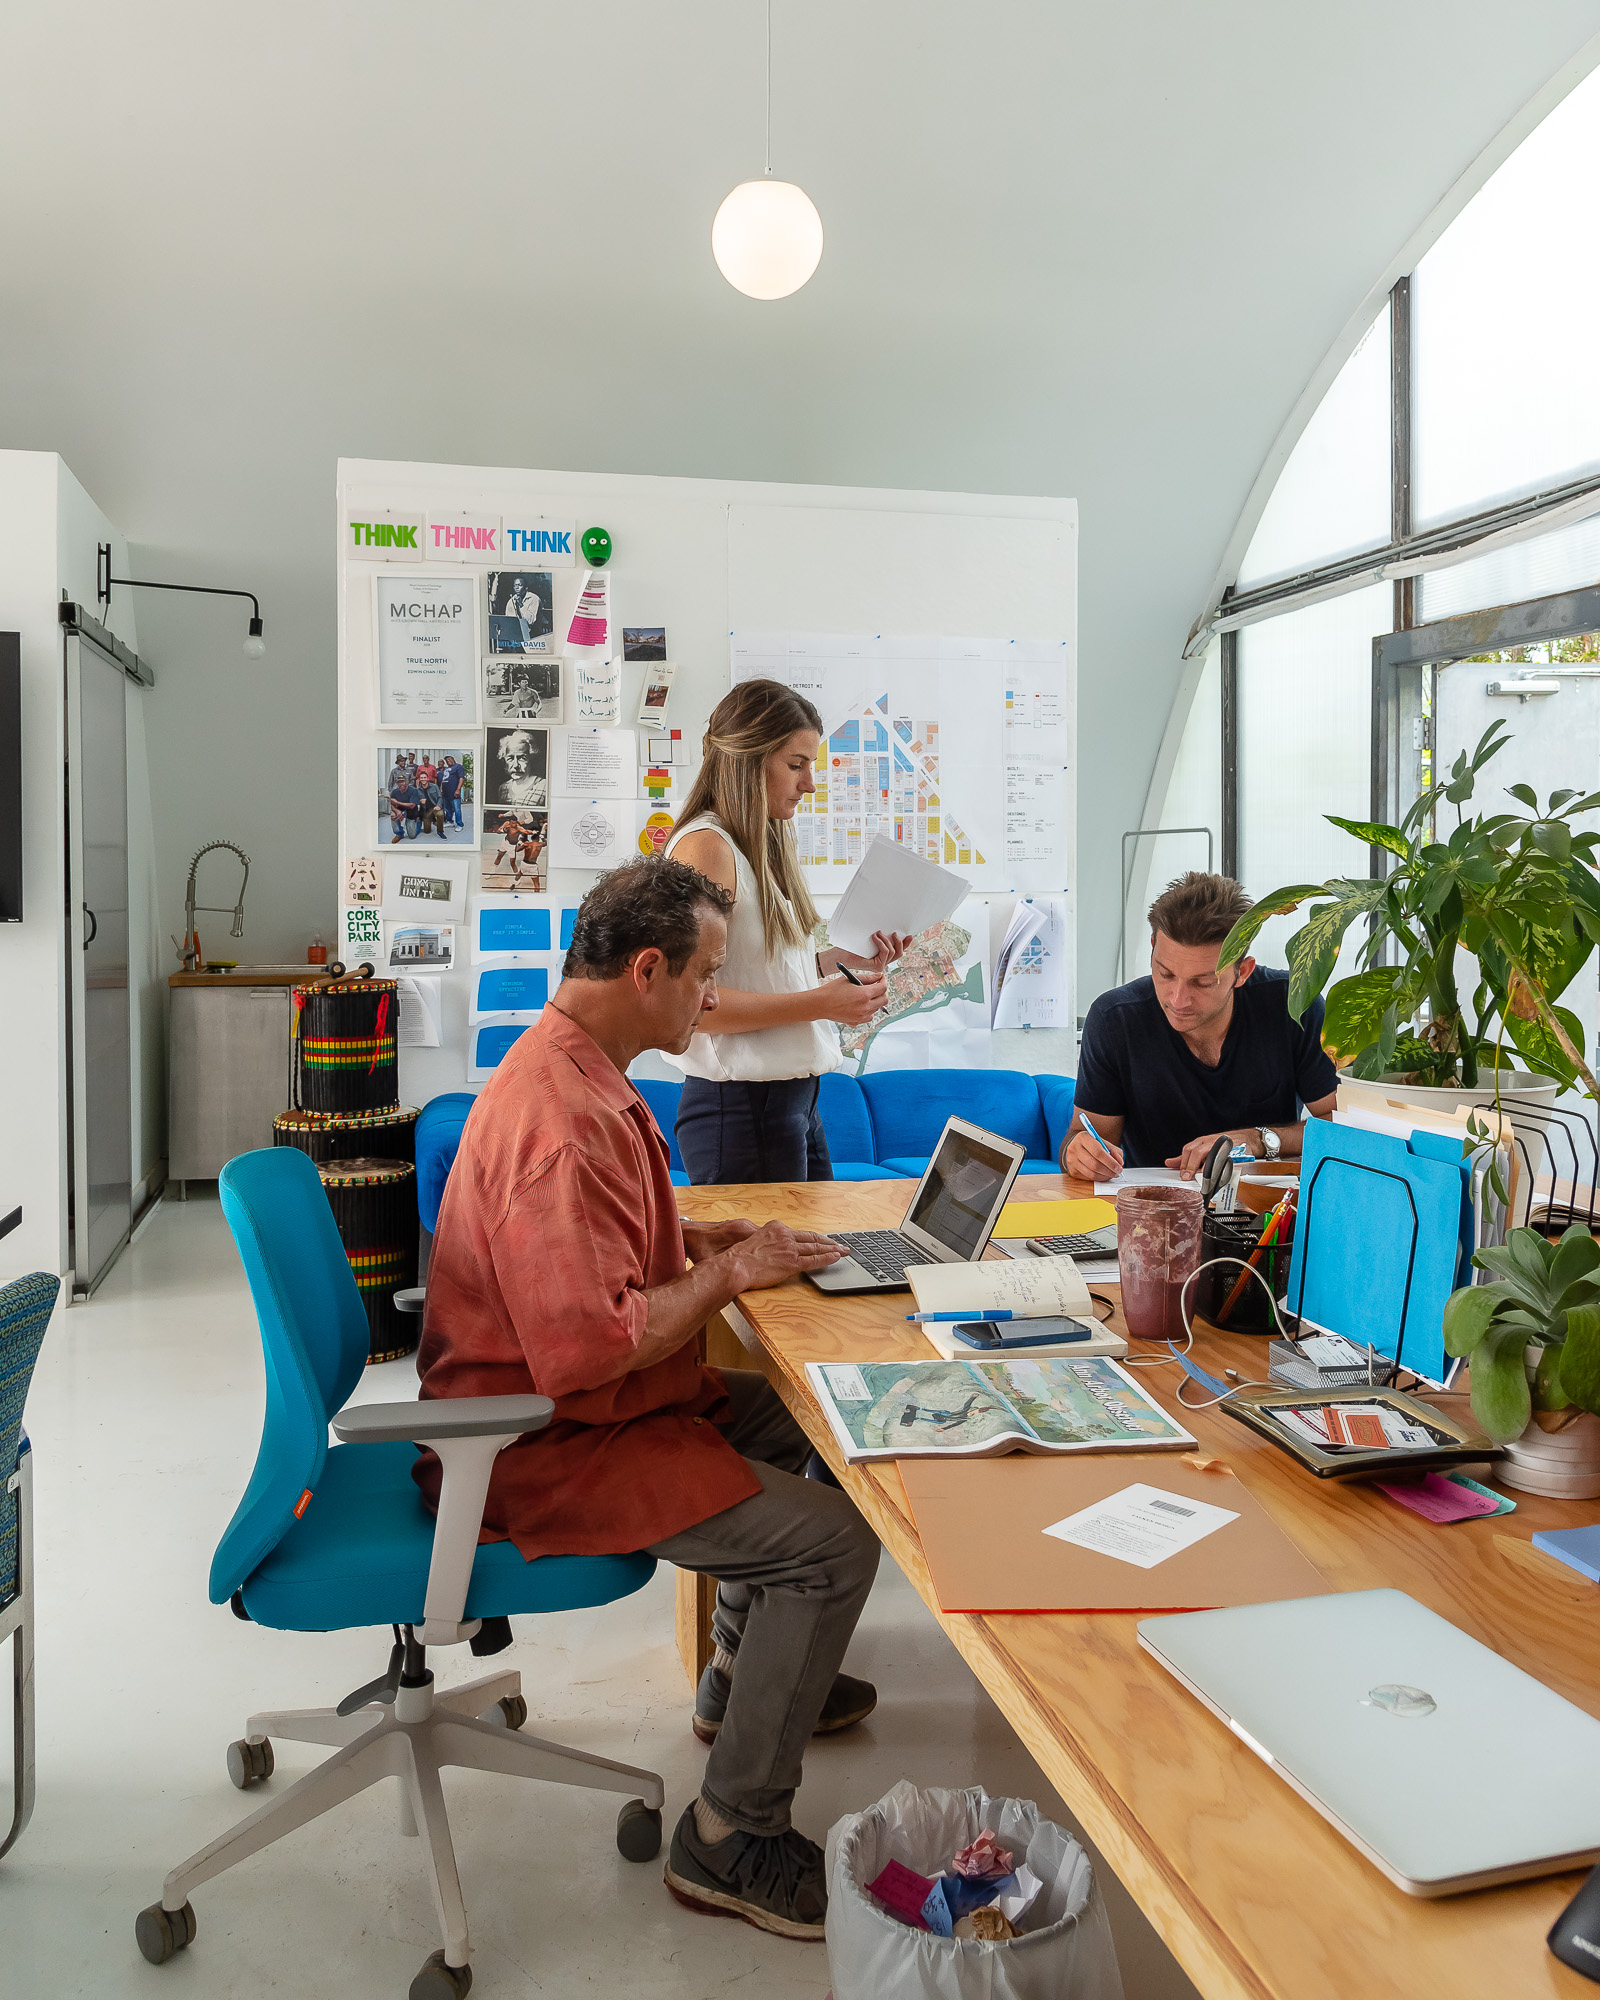 prince_concepts_office_hut_spring-3.jpg